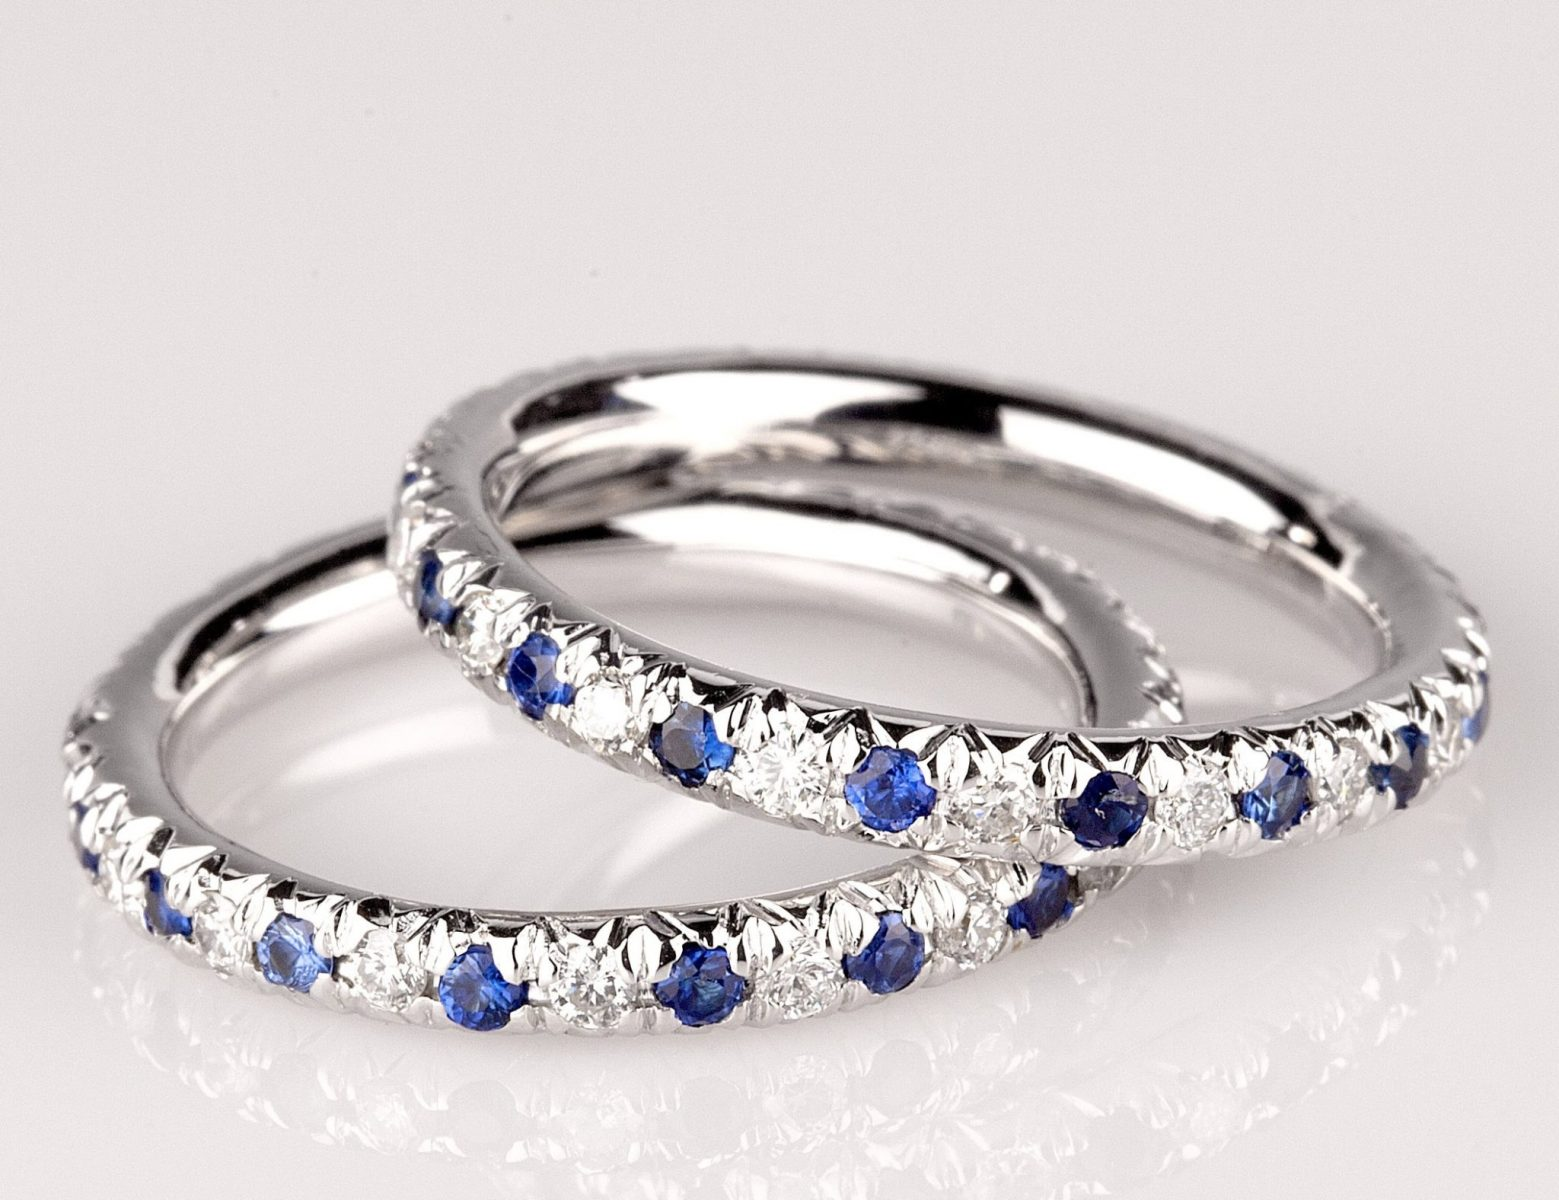 wedding cost context large bands jewellery platinum diamond band rings ring beaverbrooks